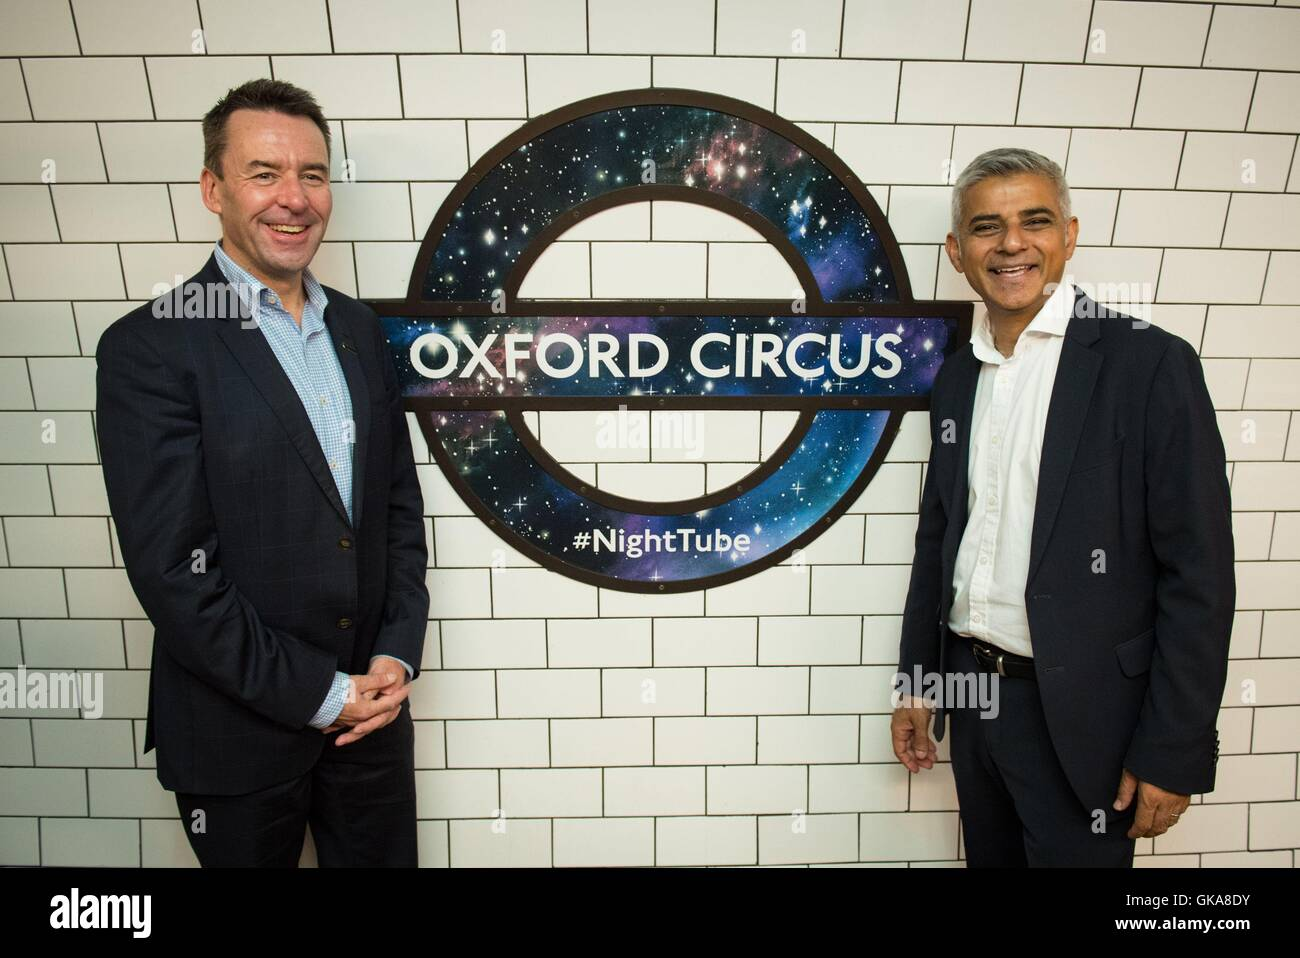 Transport for London Managing Director Mark Wild (left) and Mayor of London Sadiq Khan with a new Night Tube logo - Stock Image